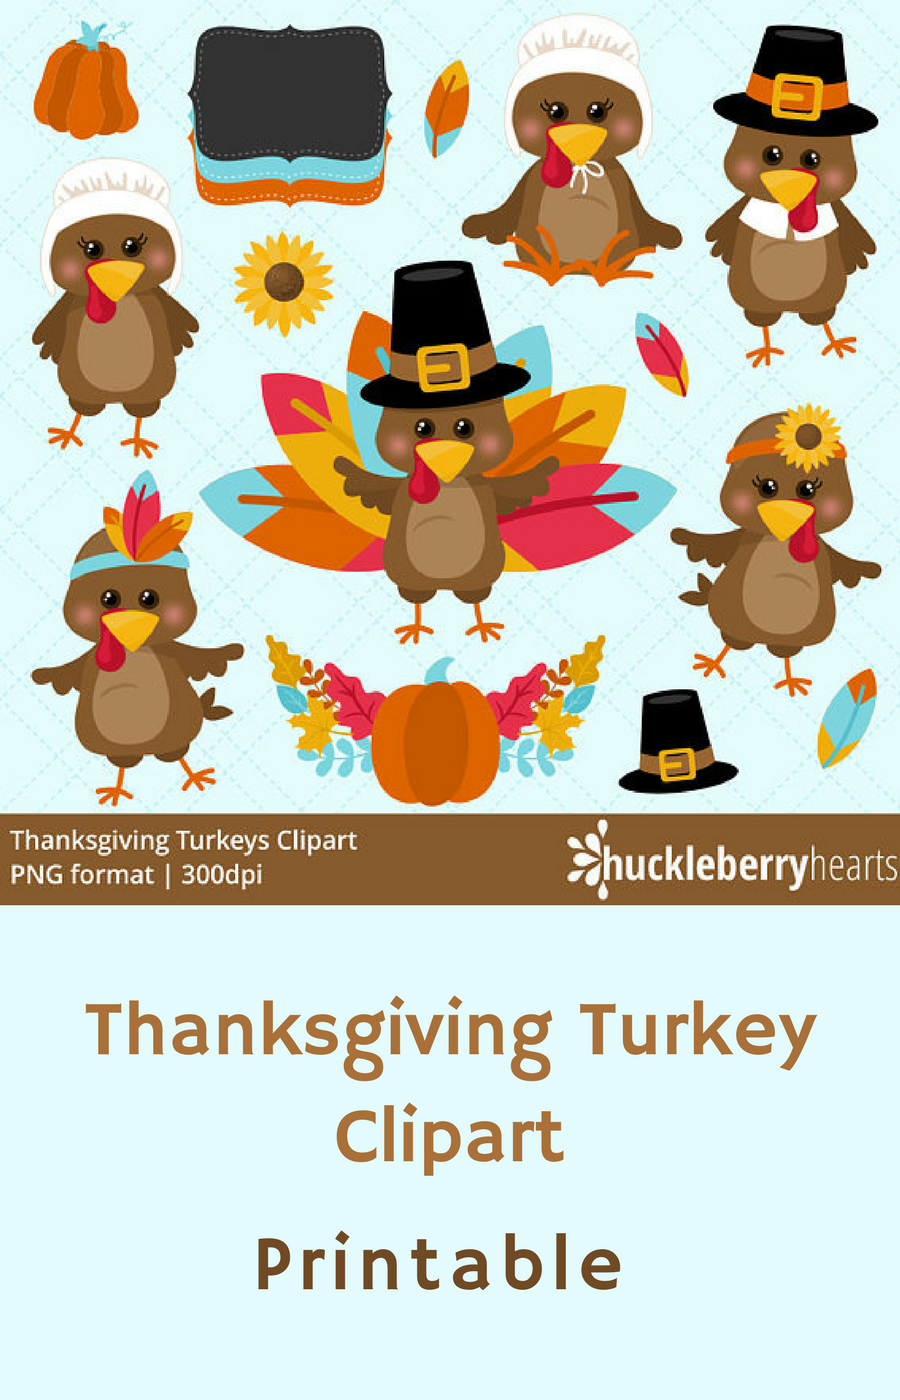 It is an image of Printable Turkeys Pictures inside cut out